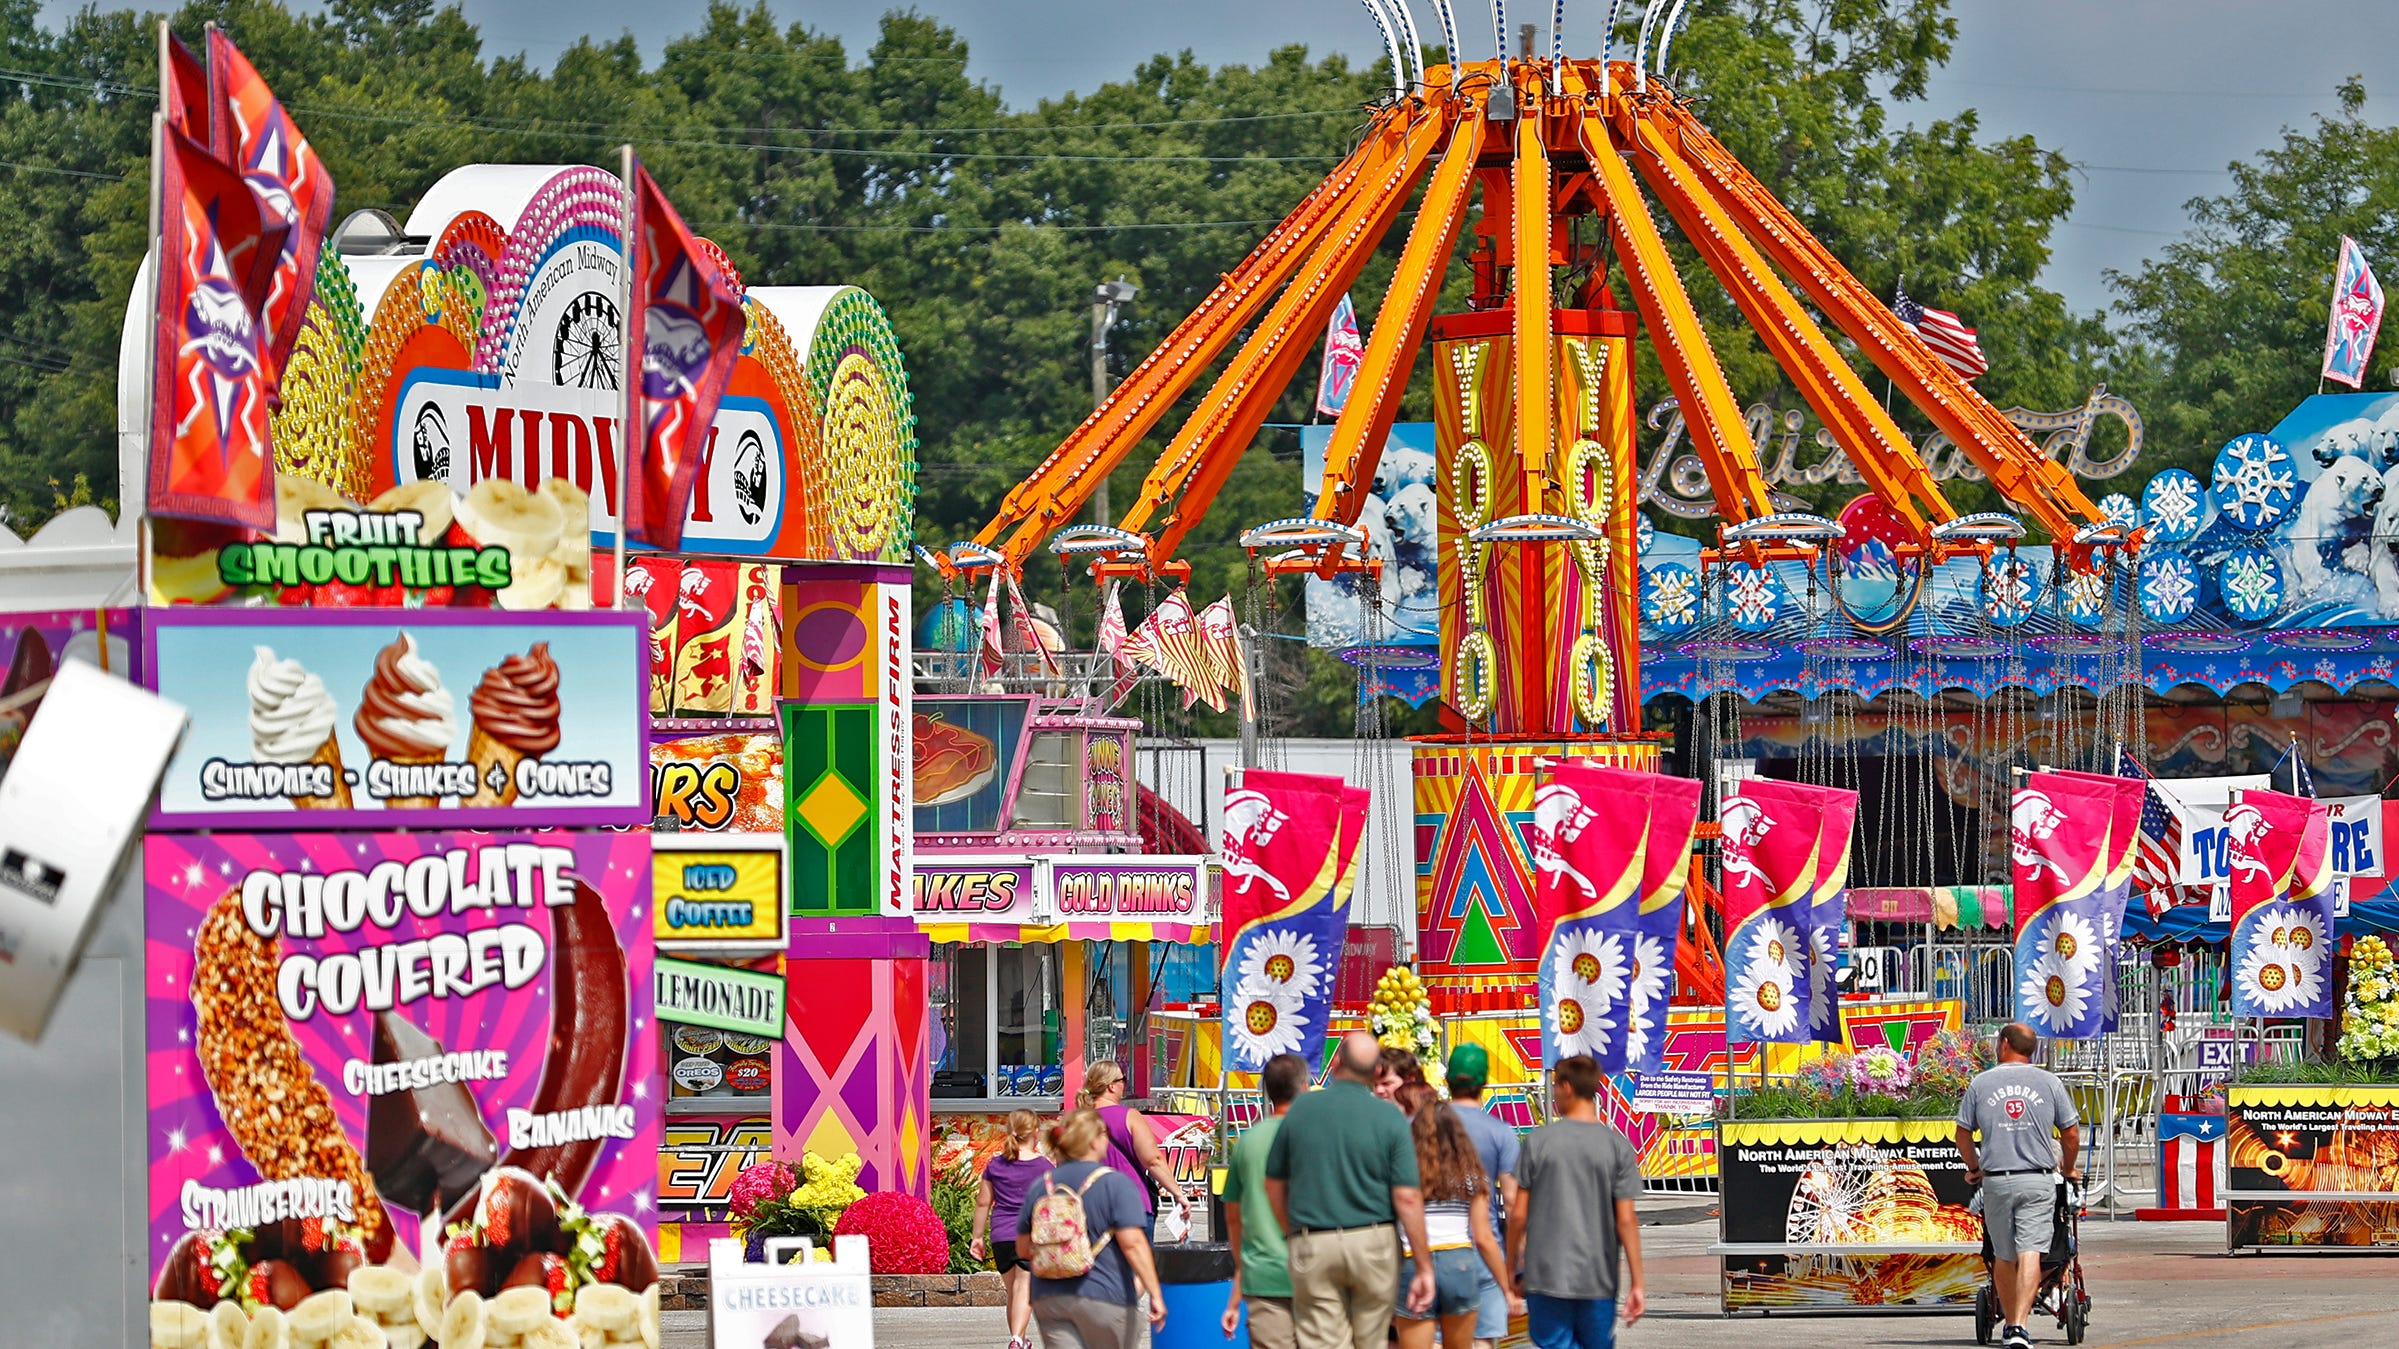 10 unexpected free things you can do at the 2018 Indiana State Fair